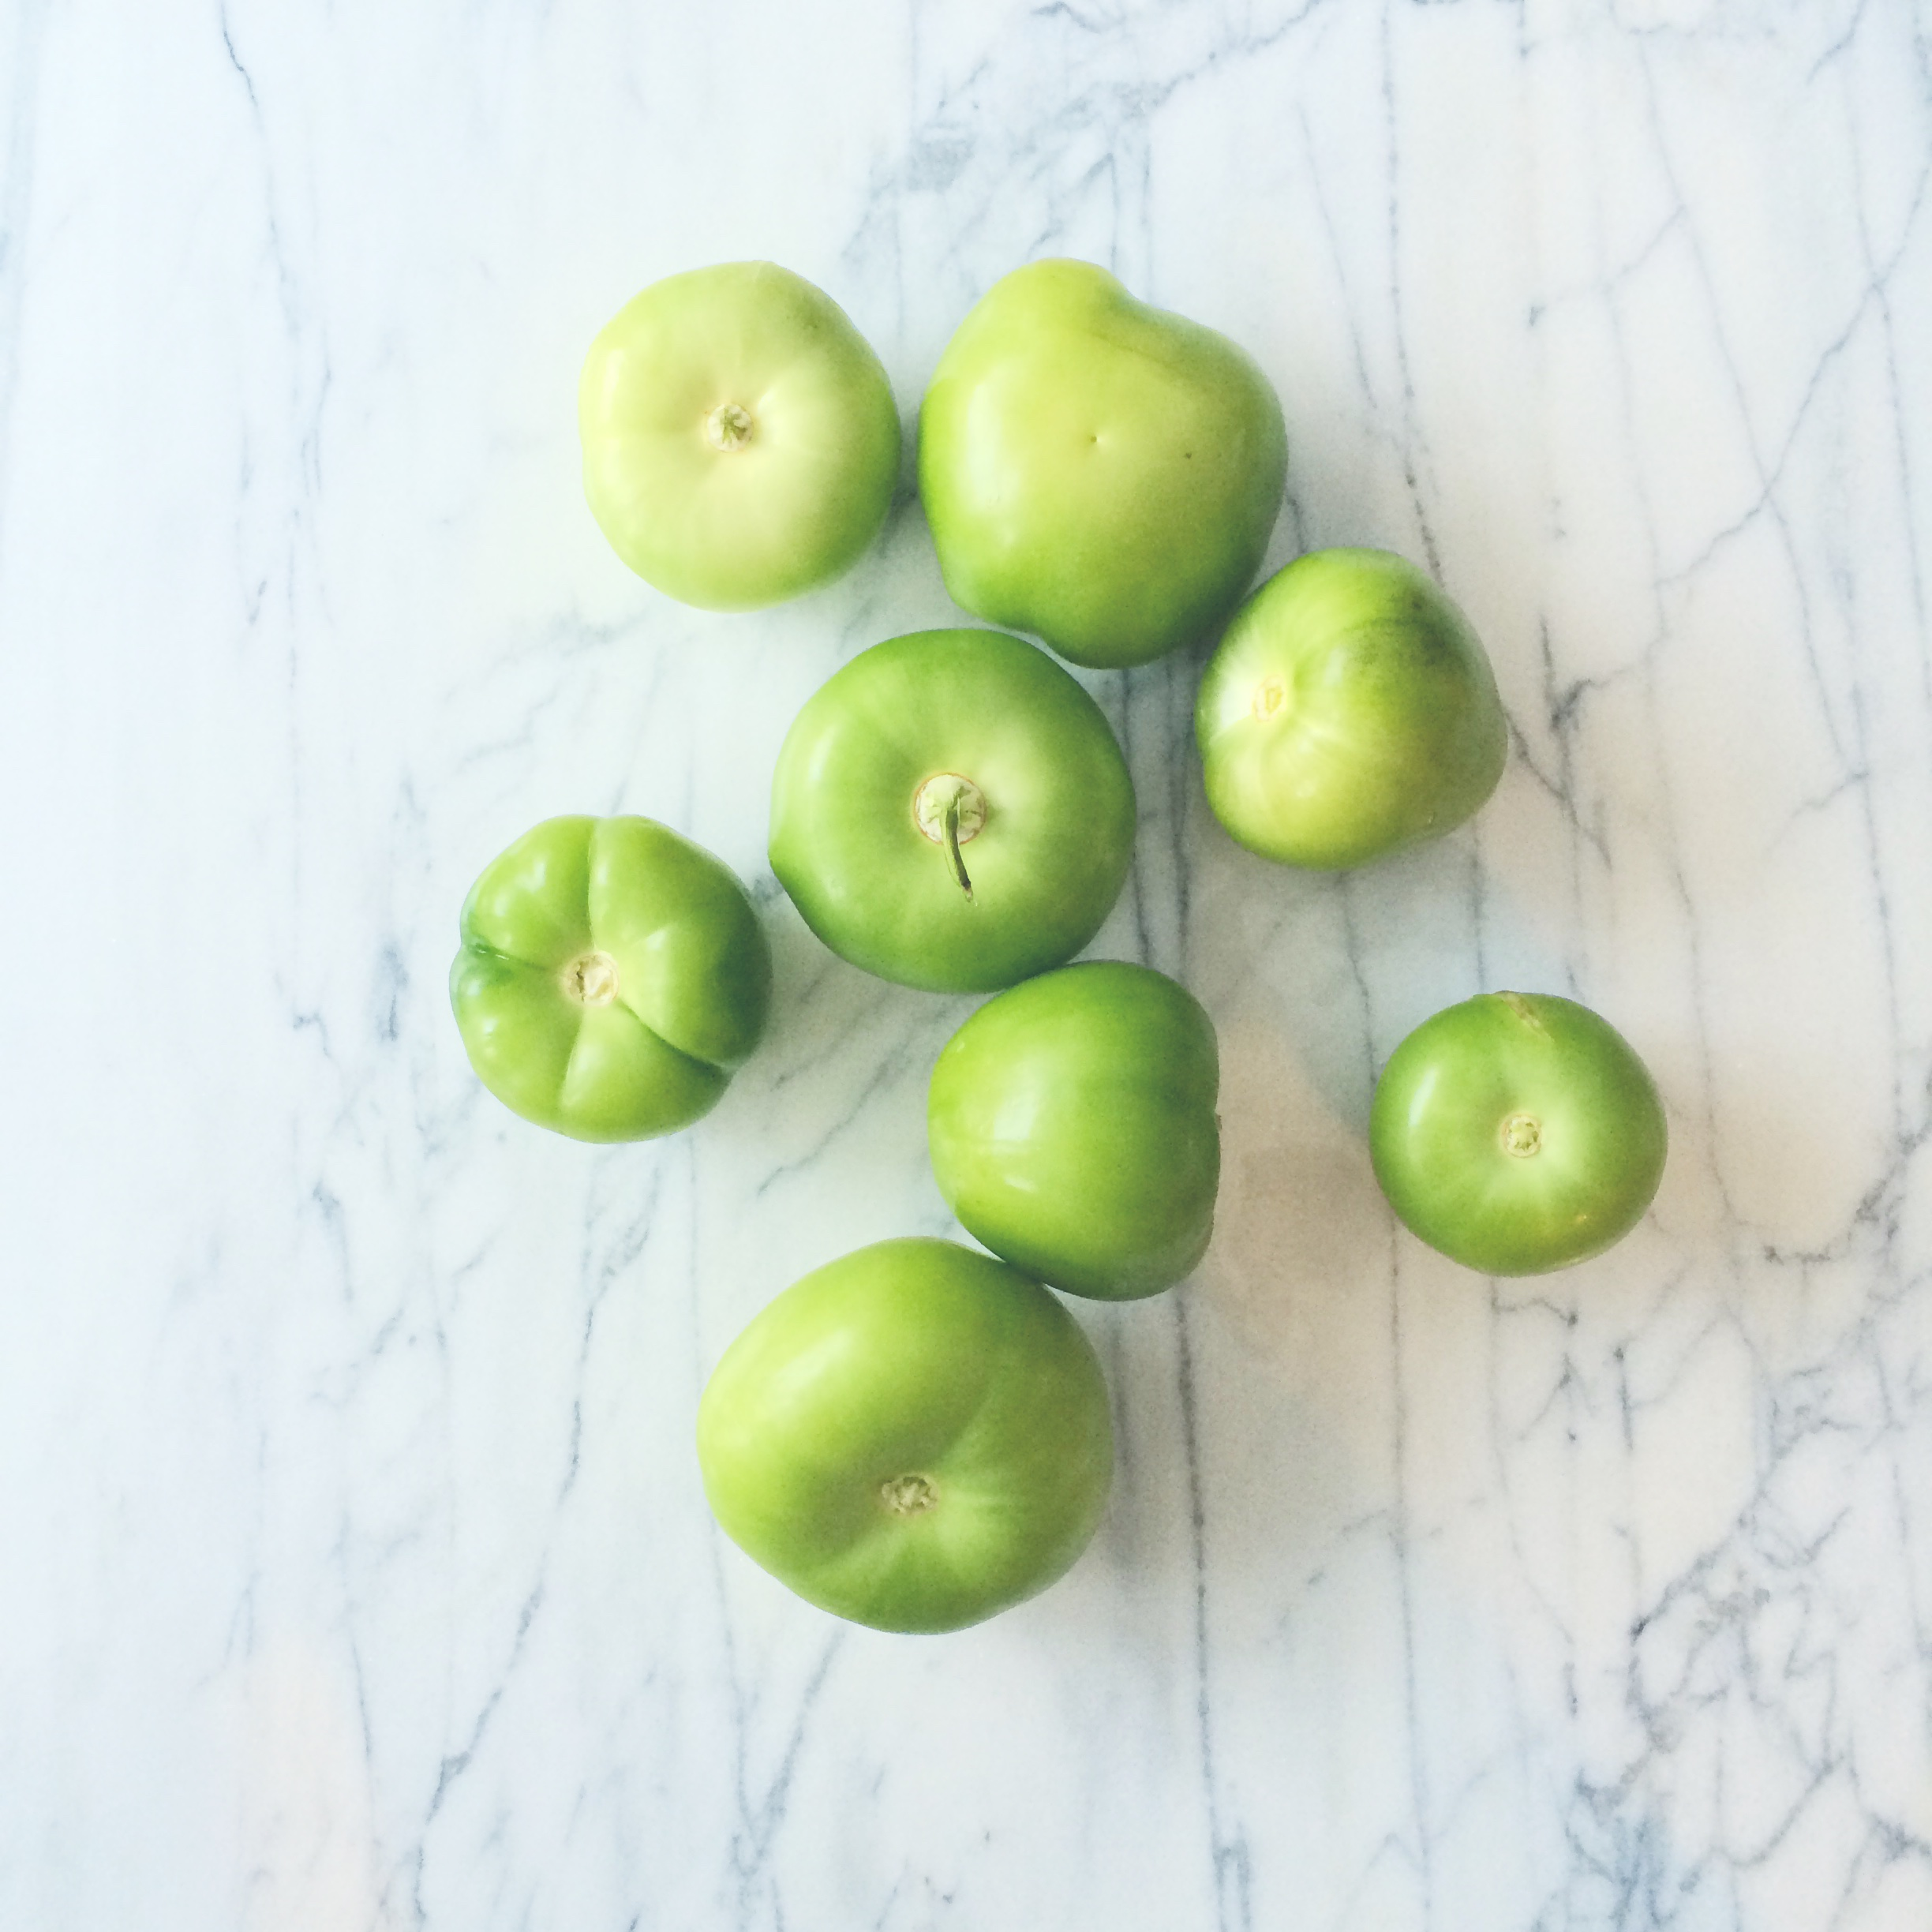 tomatillos for posole